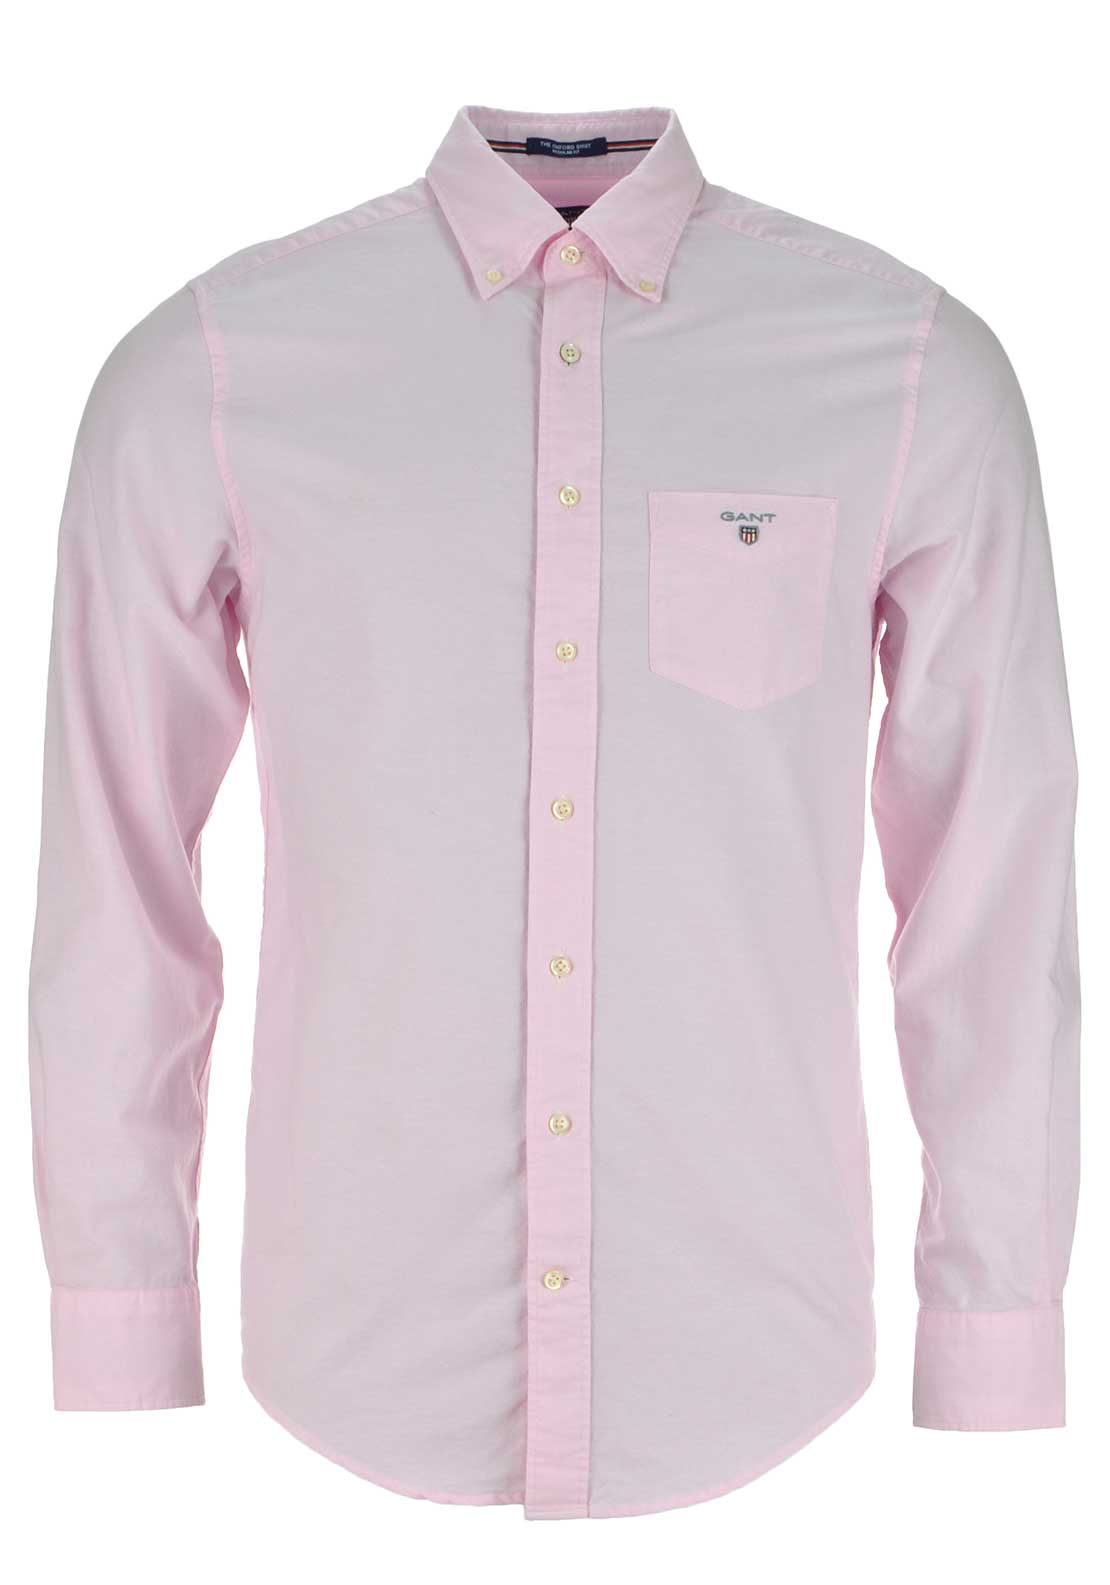 GANT Mens Oxford Shirt, Light Pink